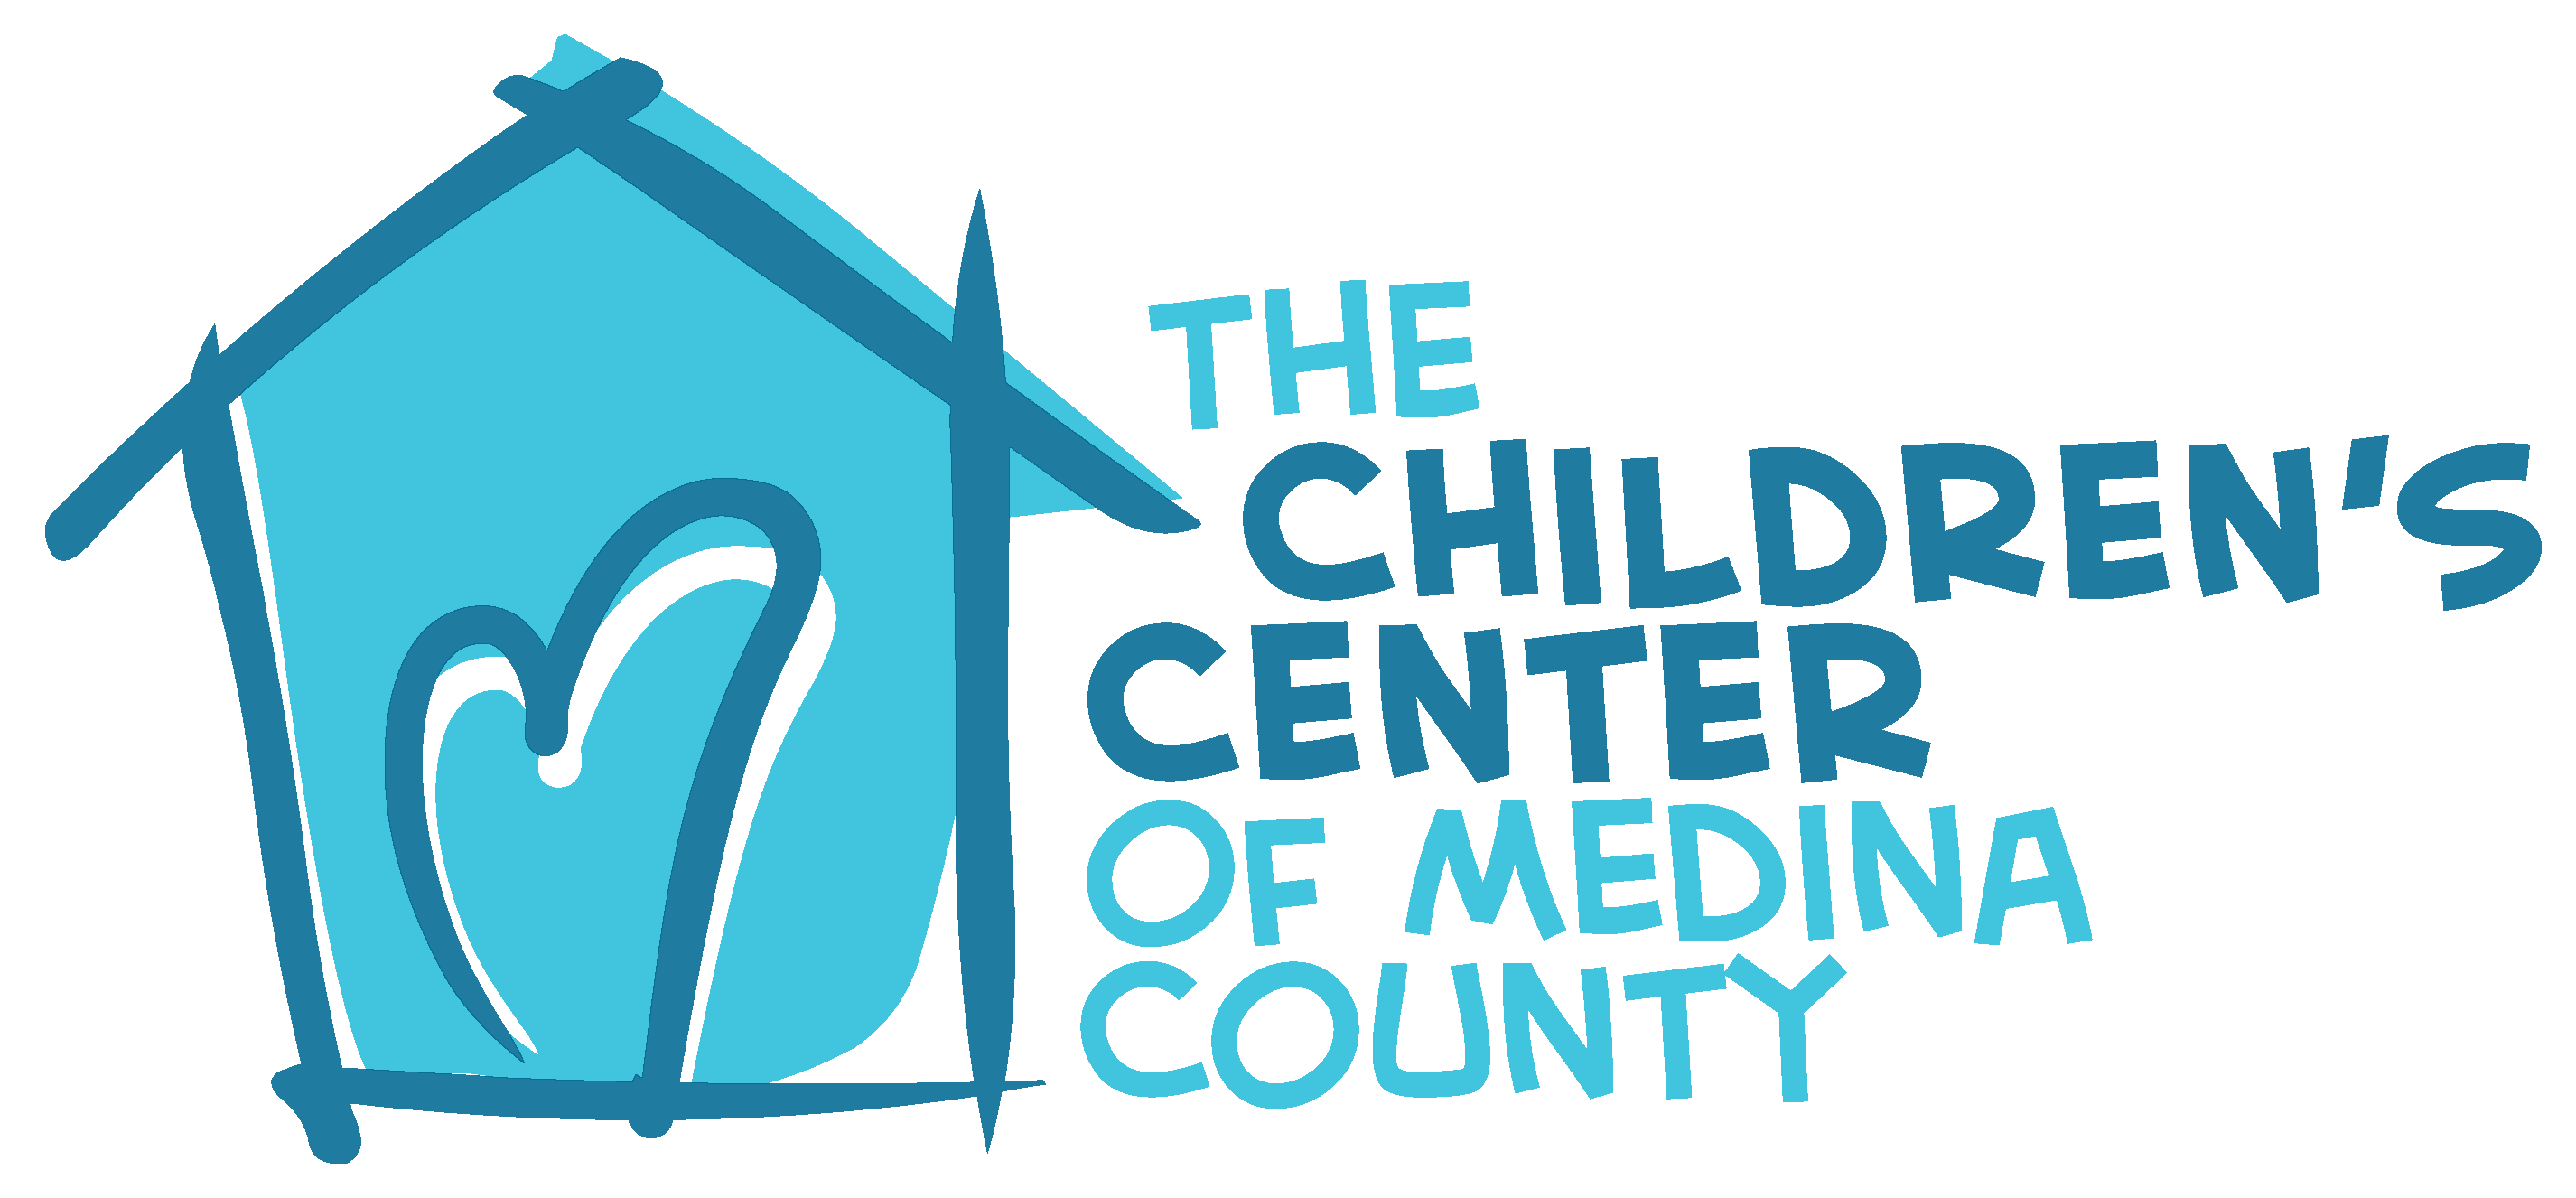 medinacountychildrenscenter.org